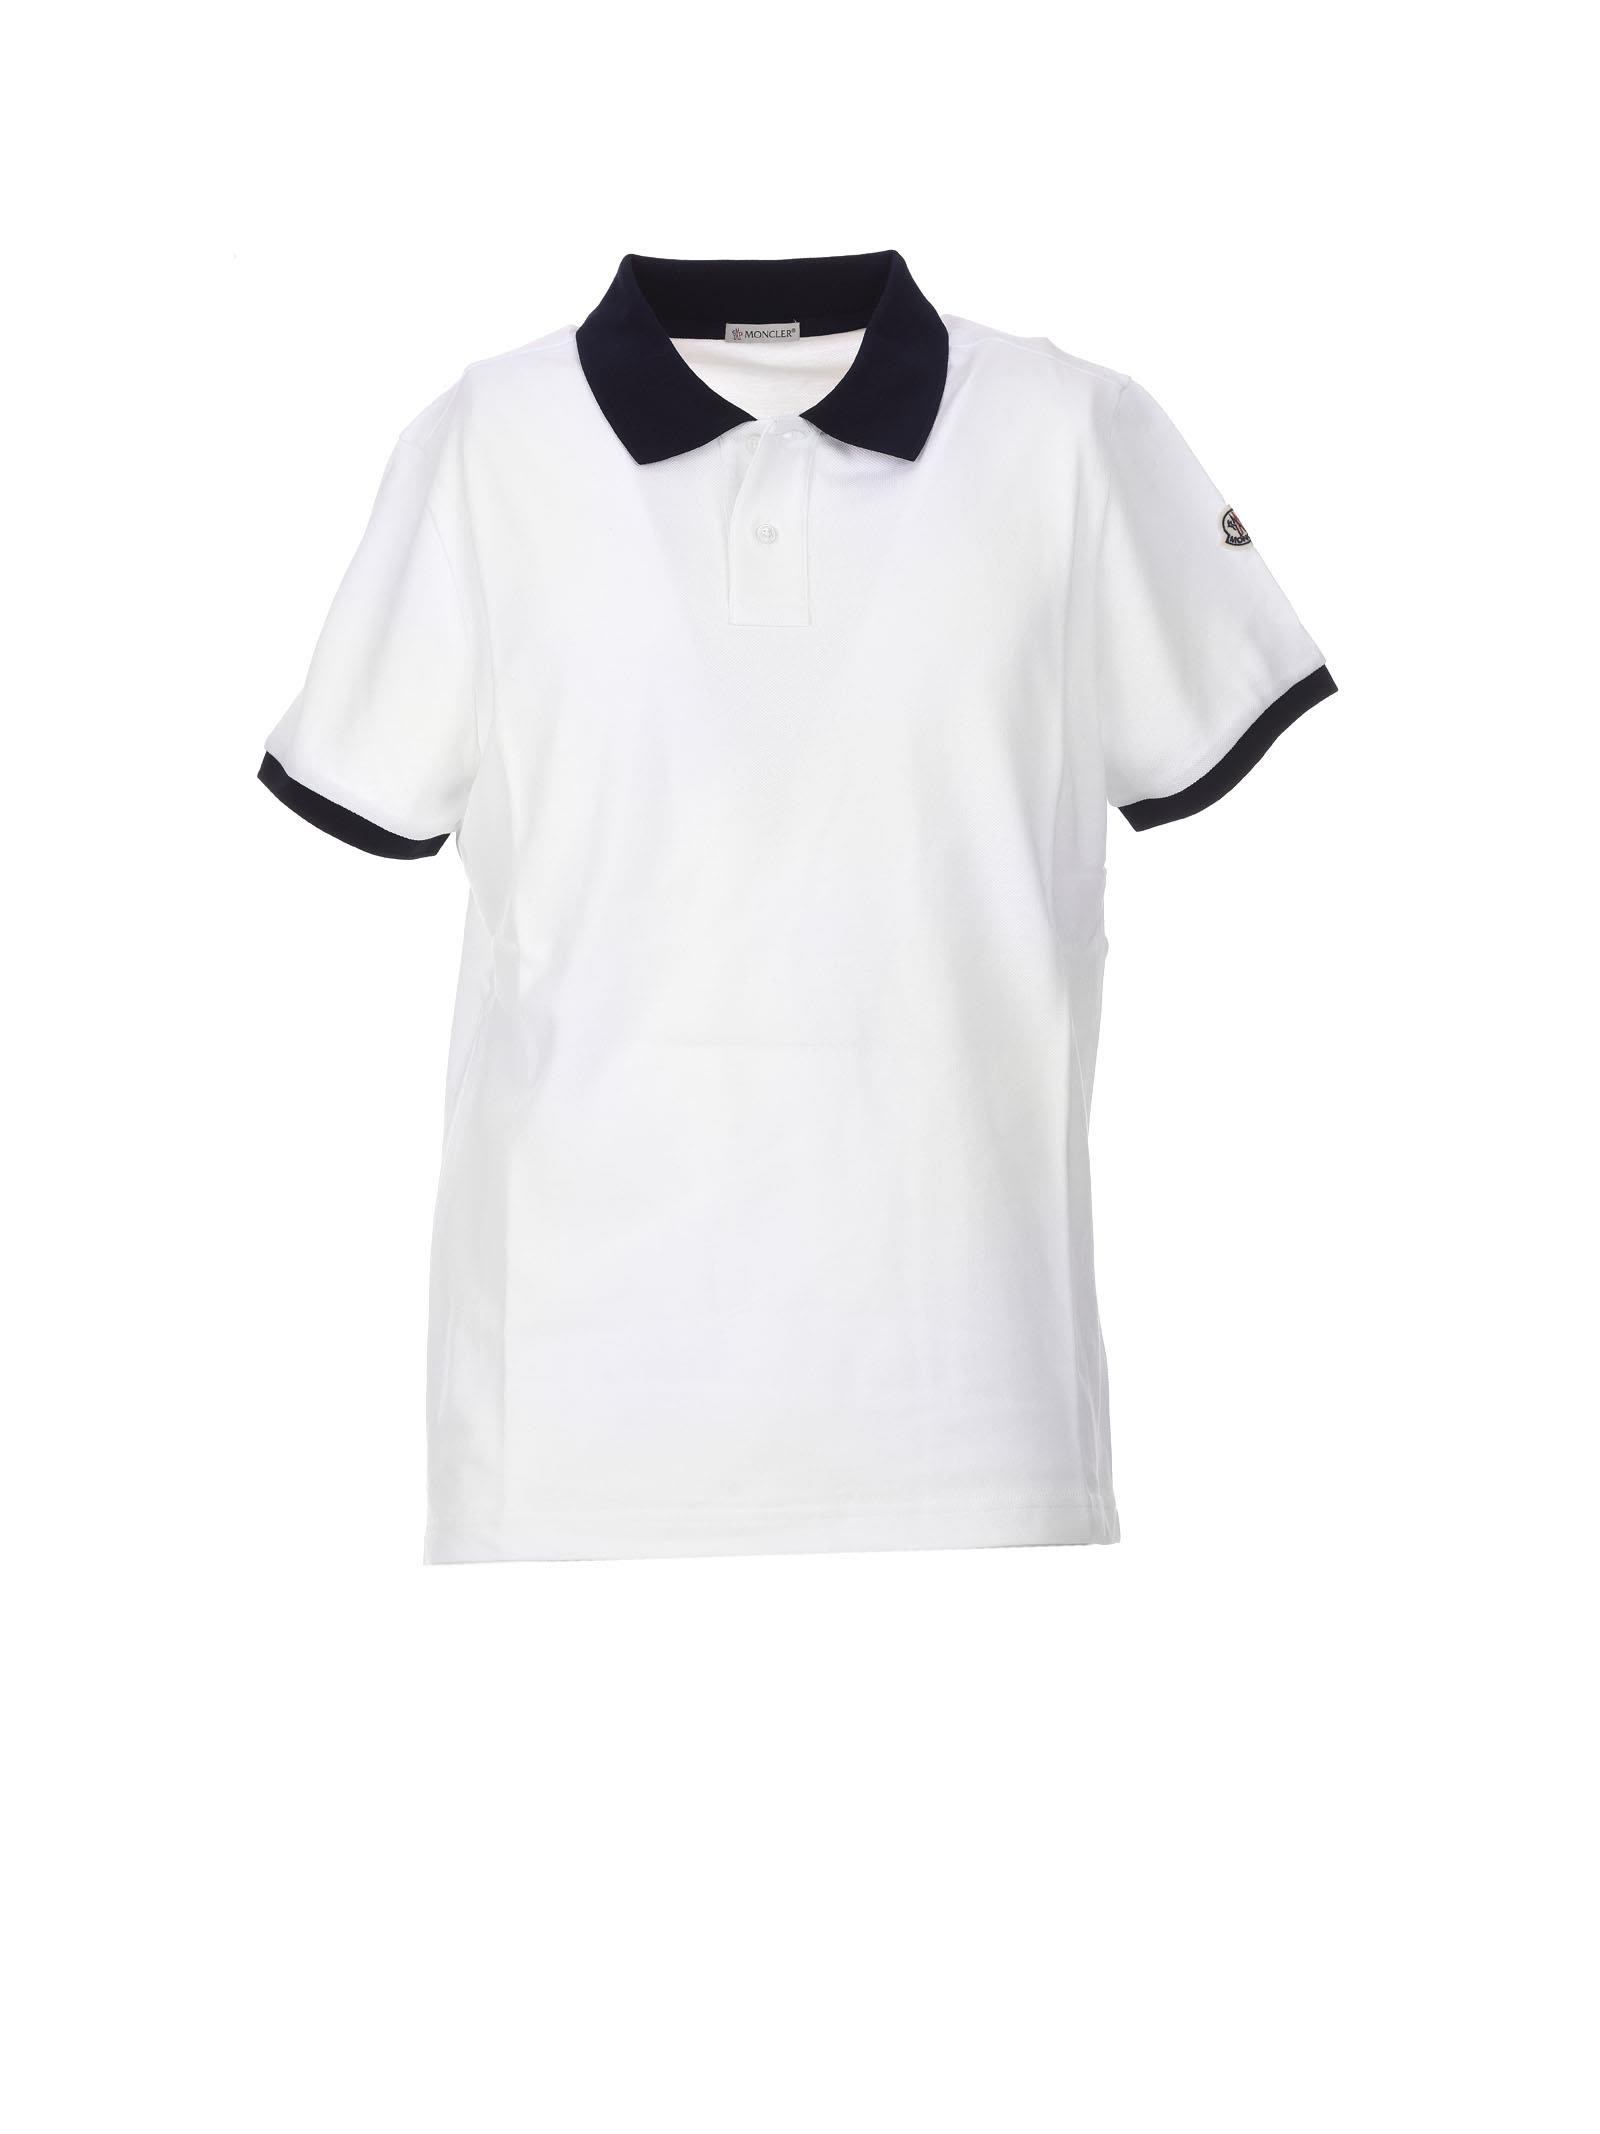 Moncler White Polo Shirt